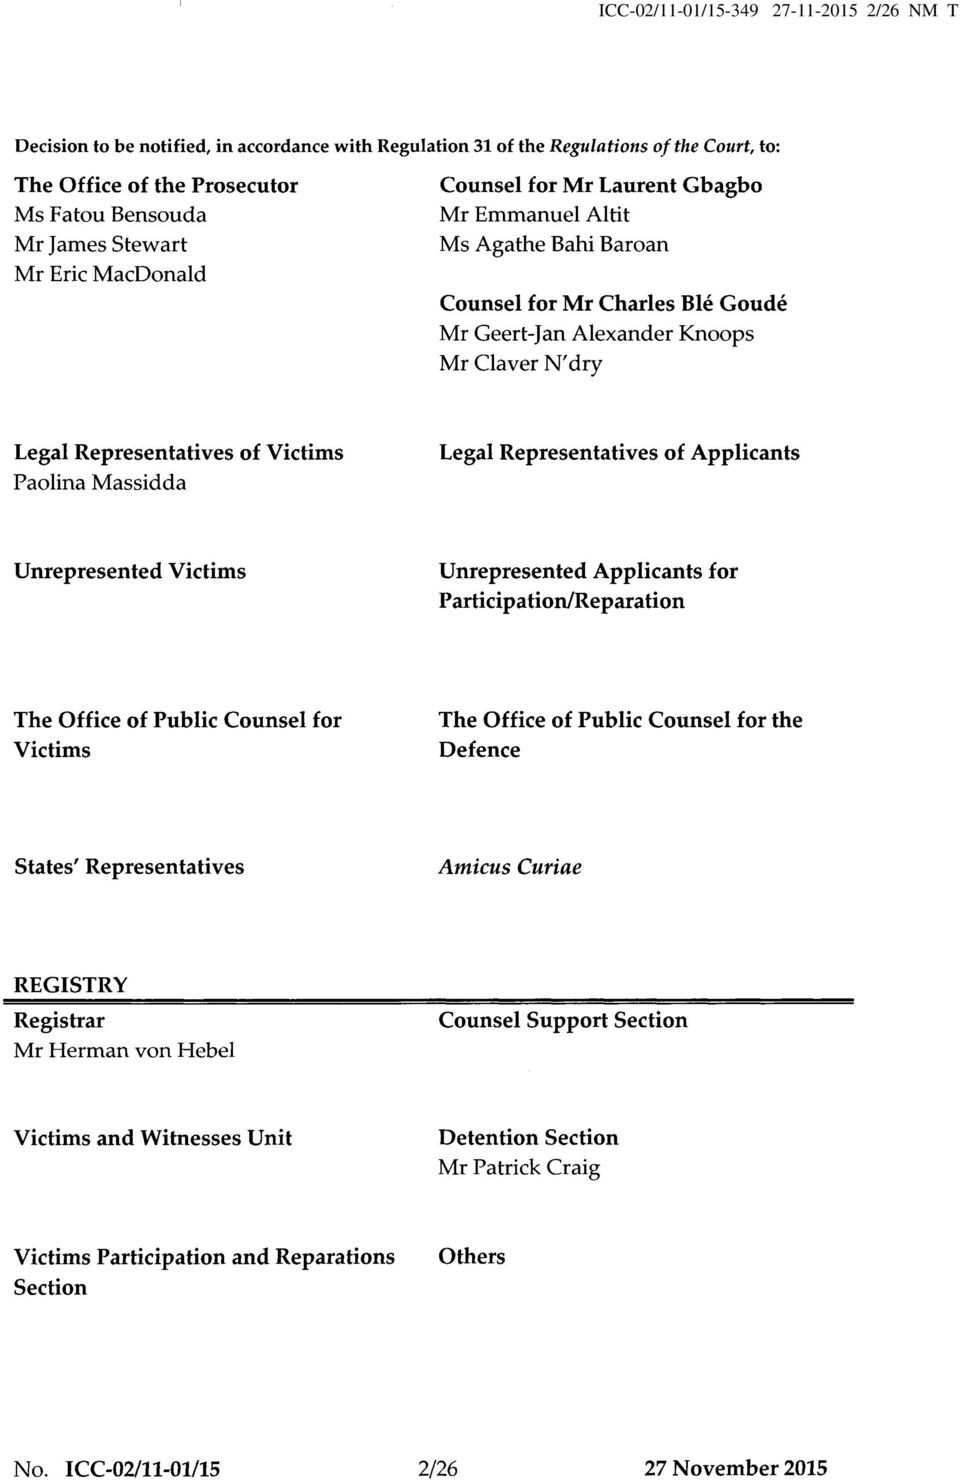 Paolina Massidda Legal Representatives of Applicants Unrepresented Victims Unrepresented Applicants for Participation/Reparation The Office of Public Counsel for Victims The Office of Public Counsel